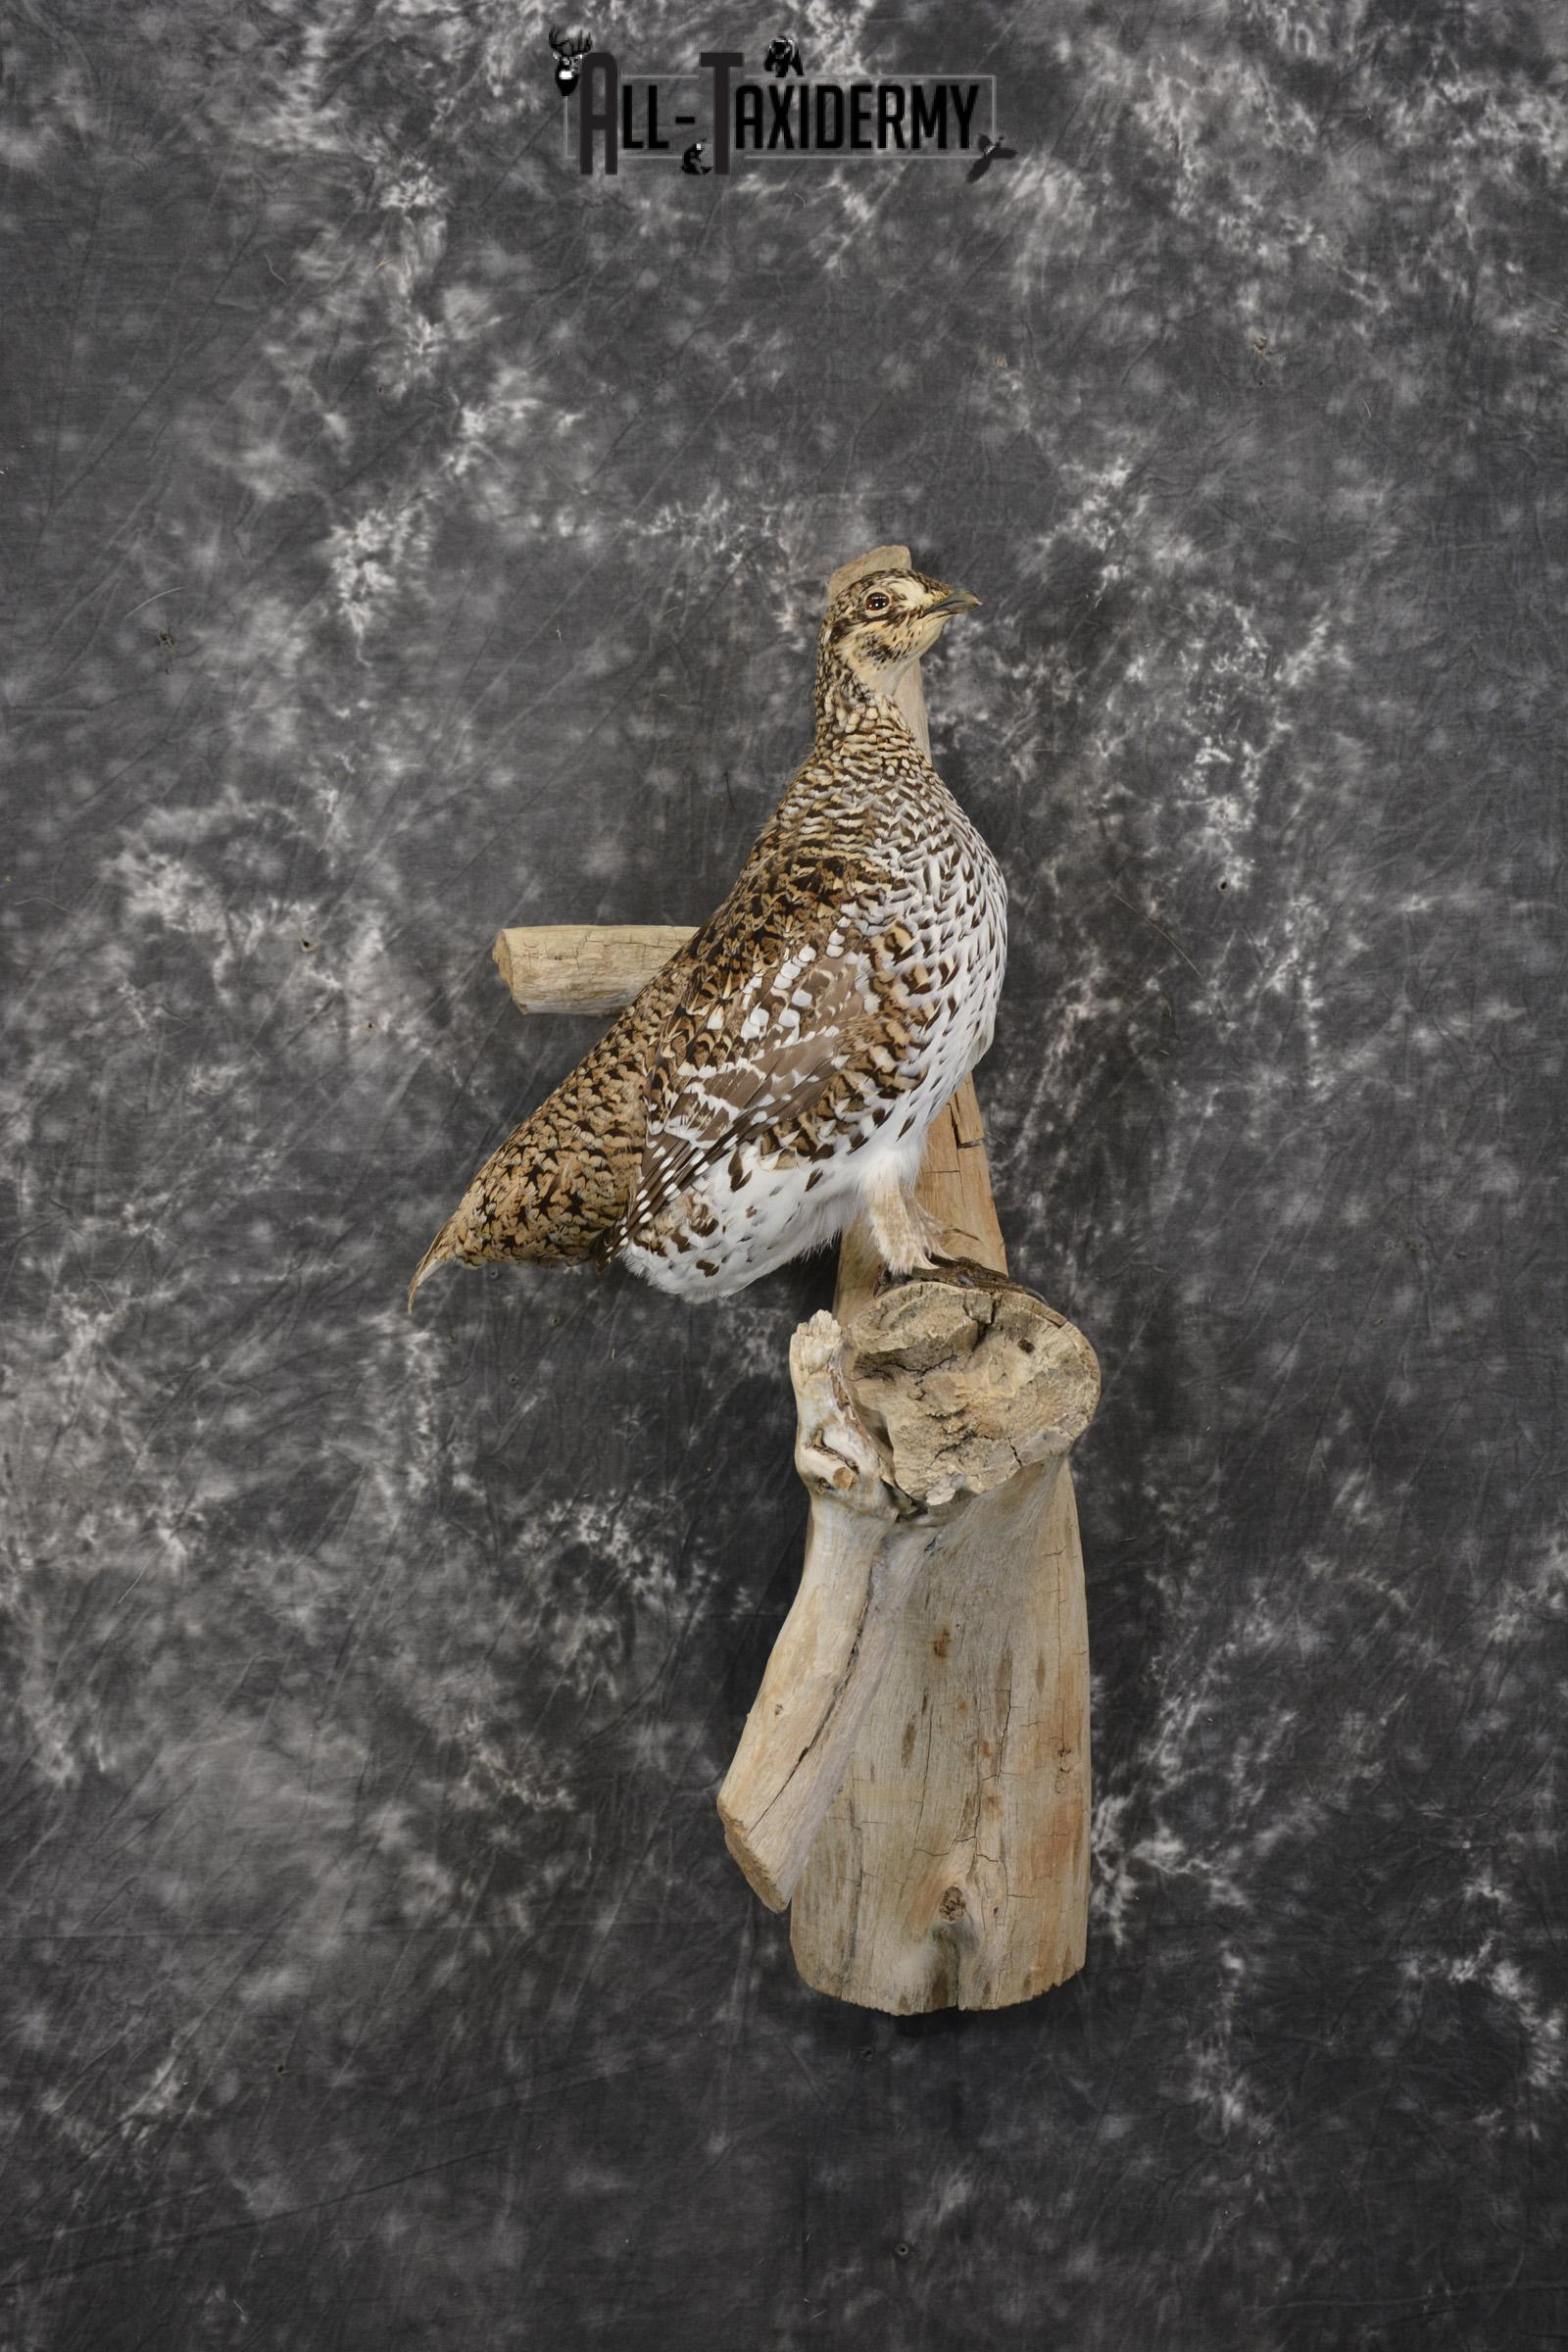 Sharptail Grouse taxidermy mount for sale SKU 1964